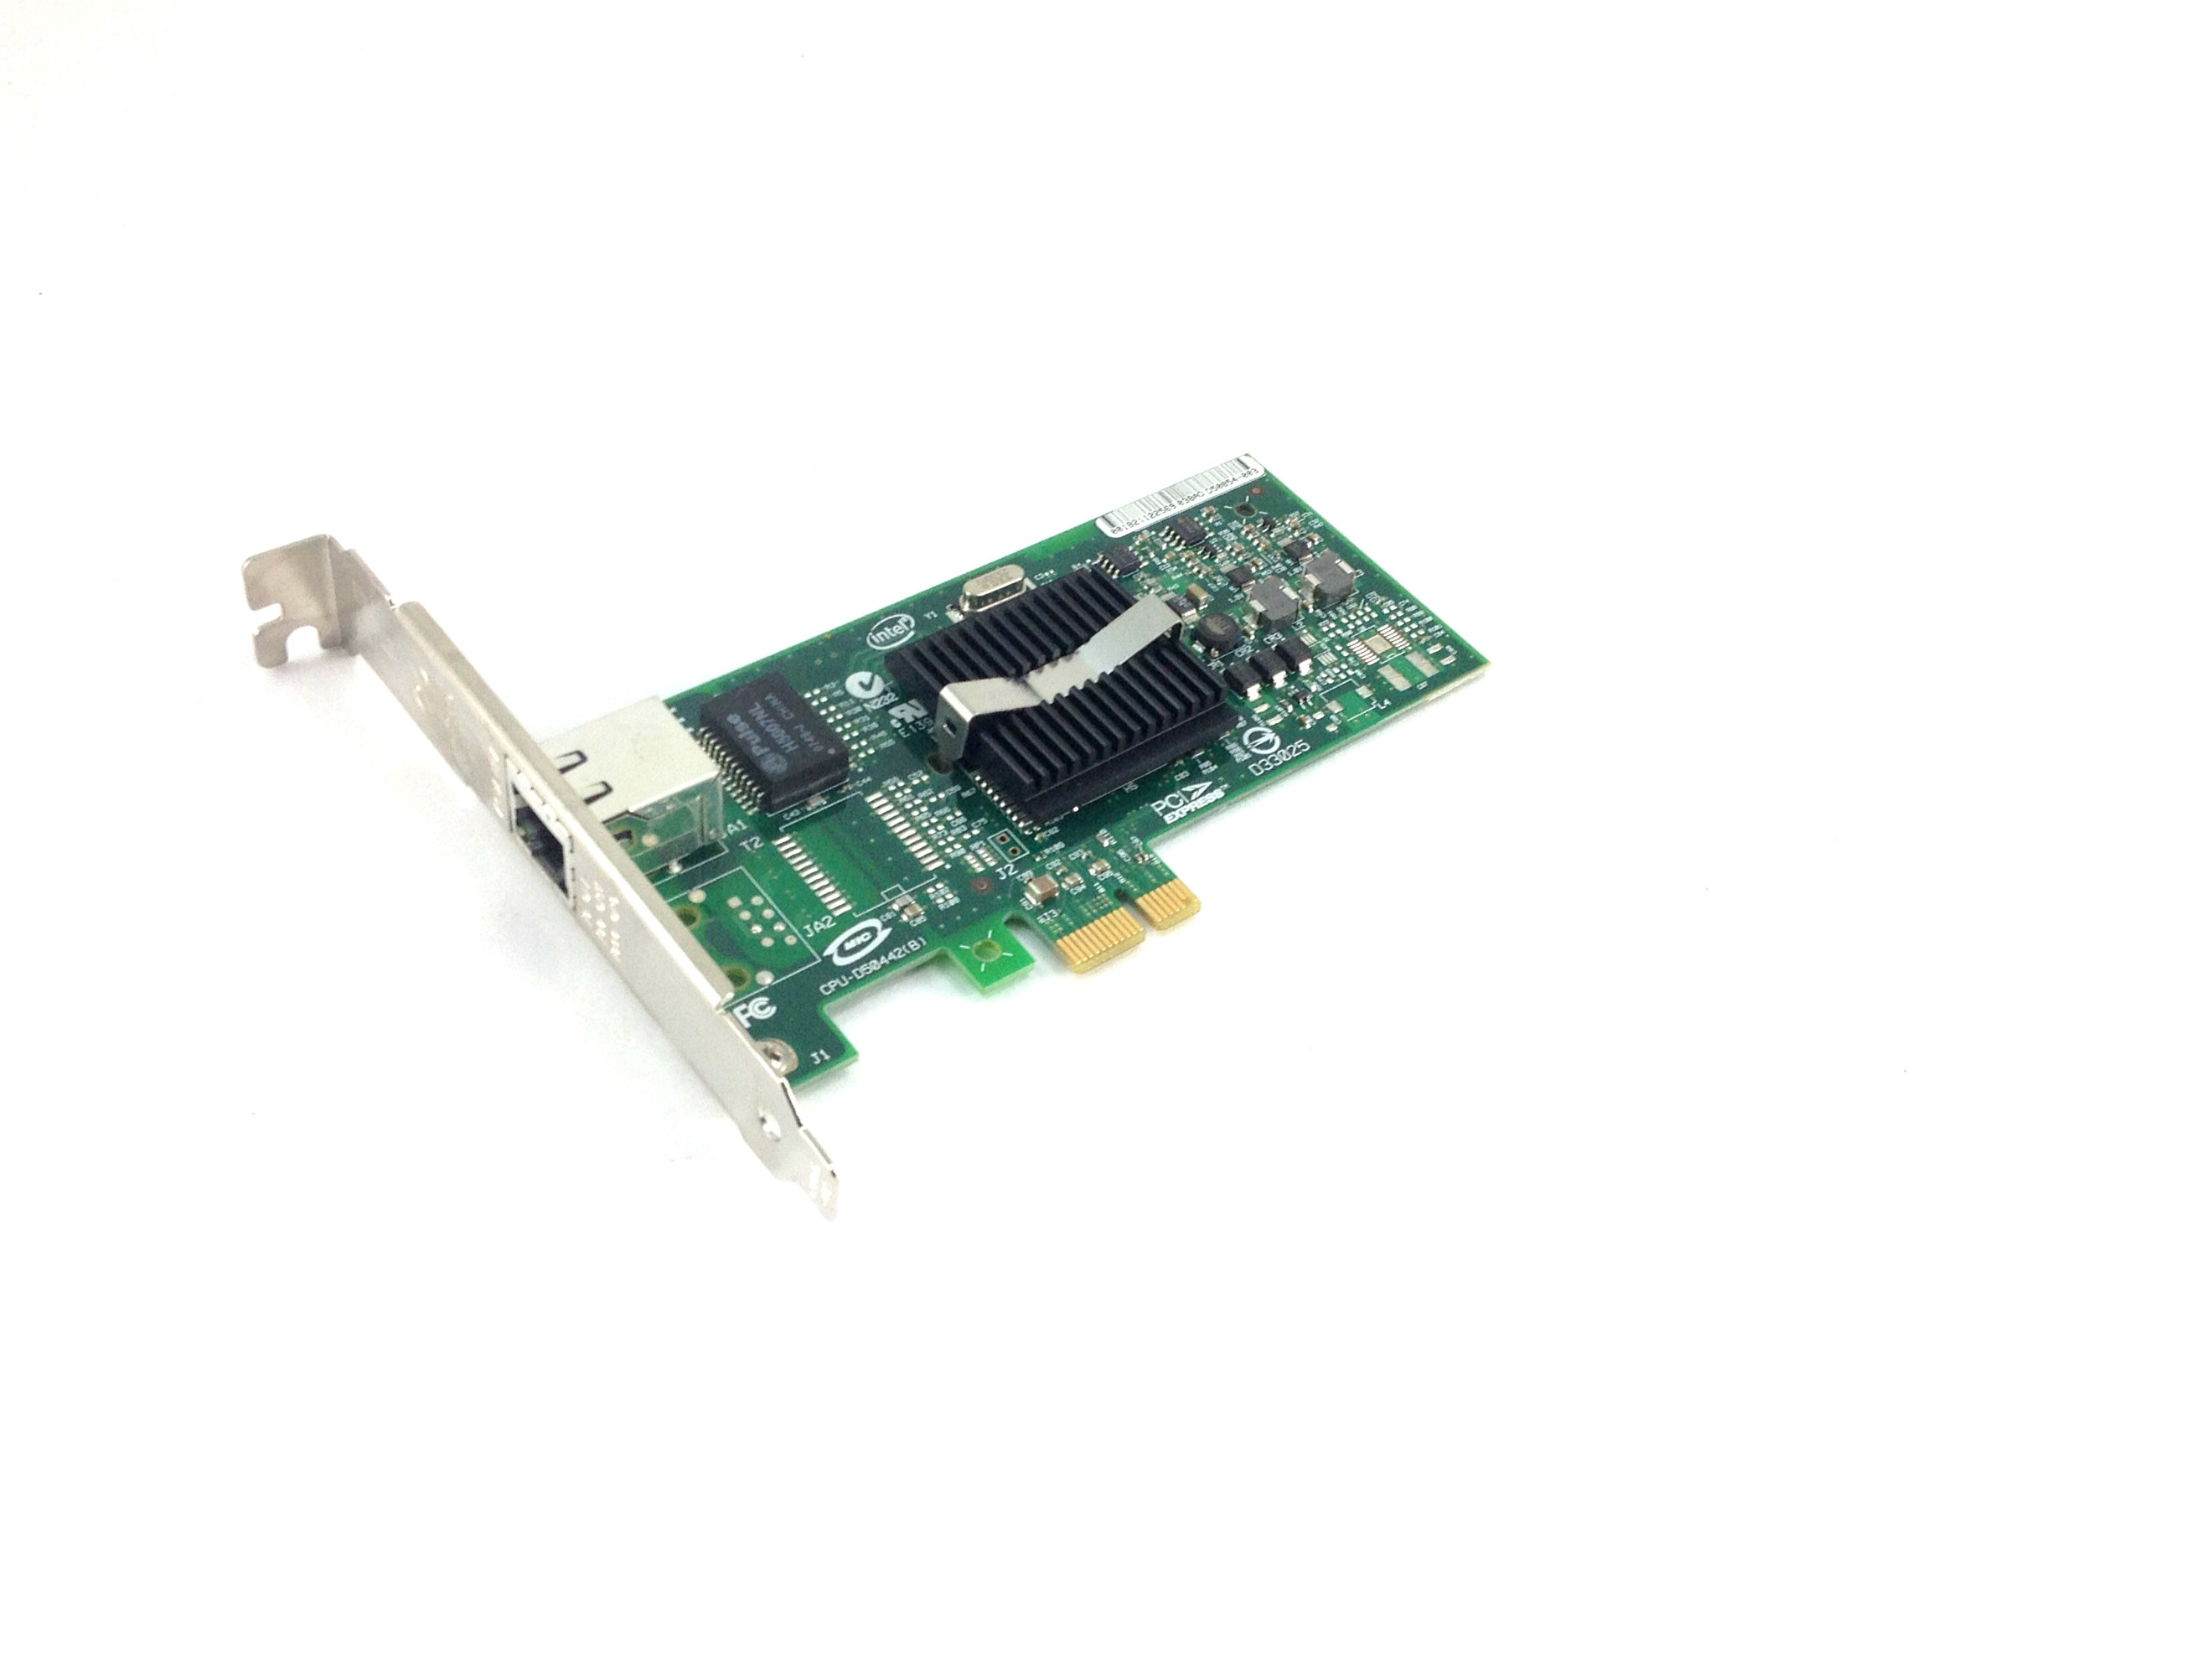 Intel Pro/1000 Pt Gigabit Lan Card PCI-E Ethernet Adapter (EXPI9300PT)